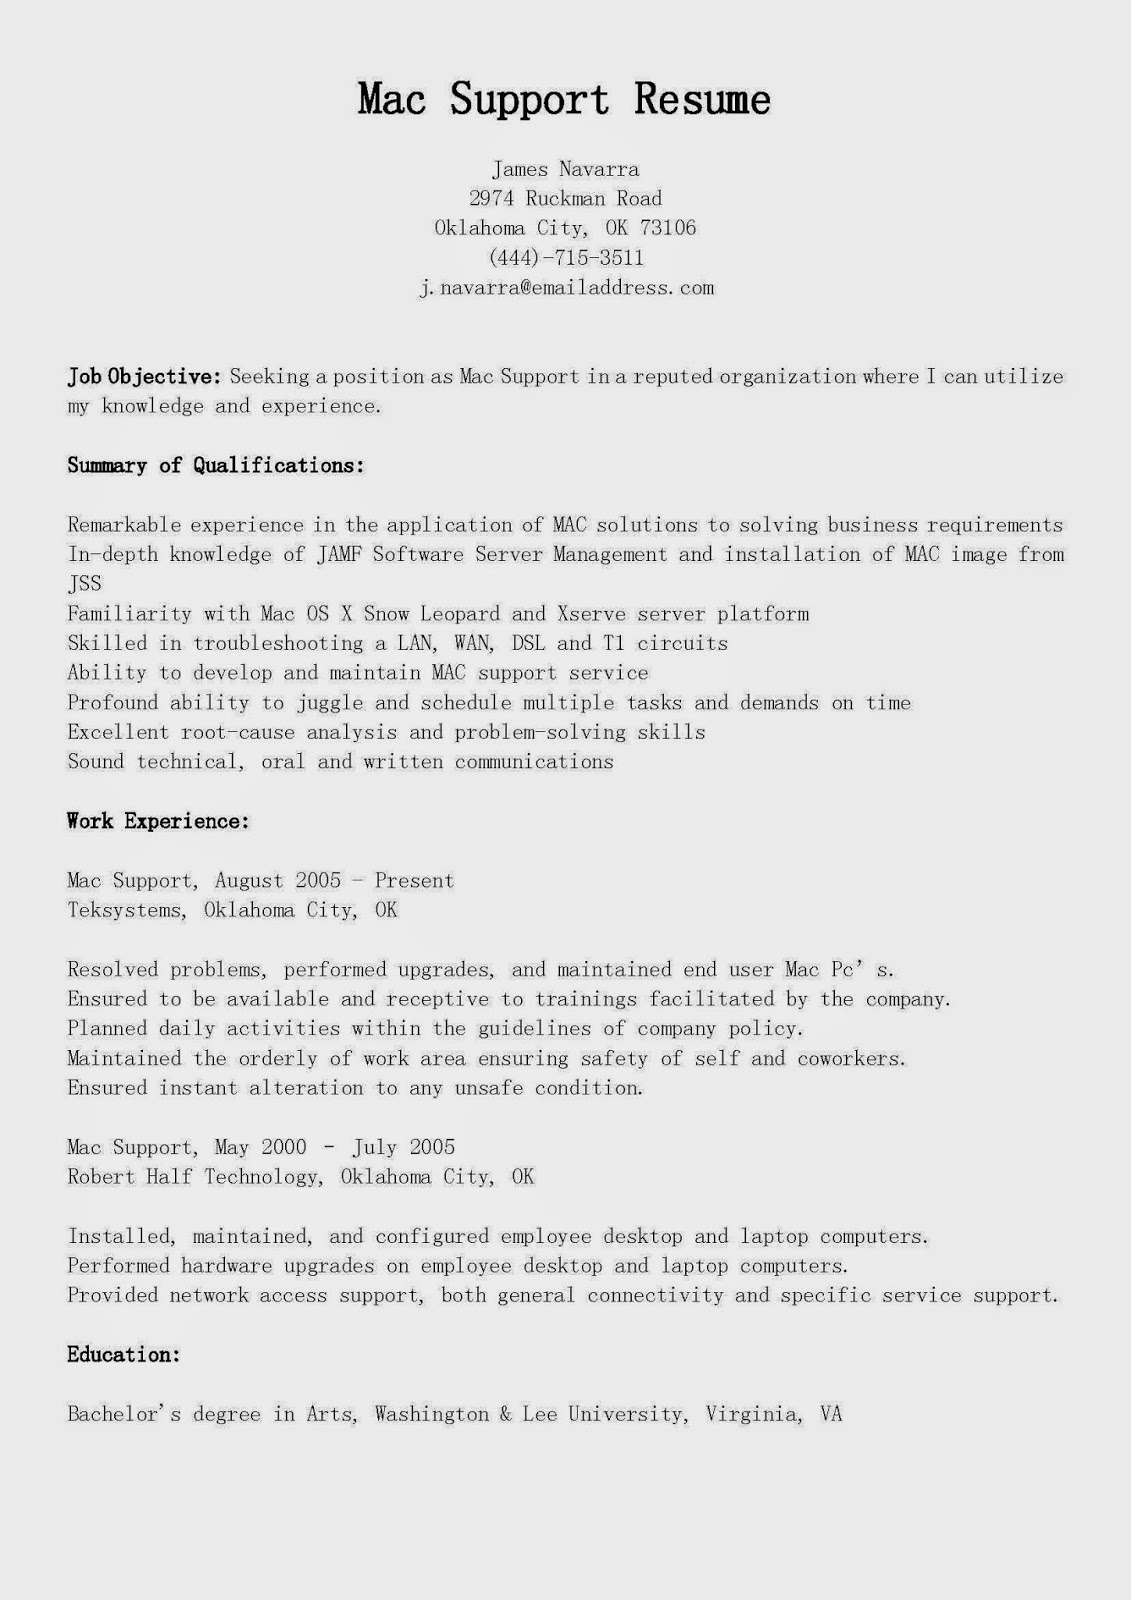 resume samples mac support resume sample